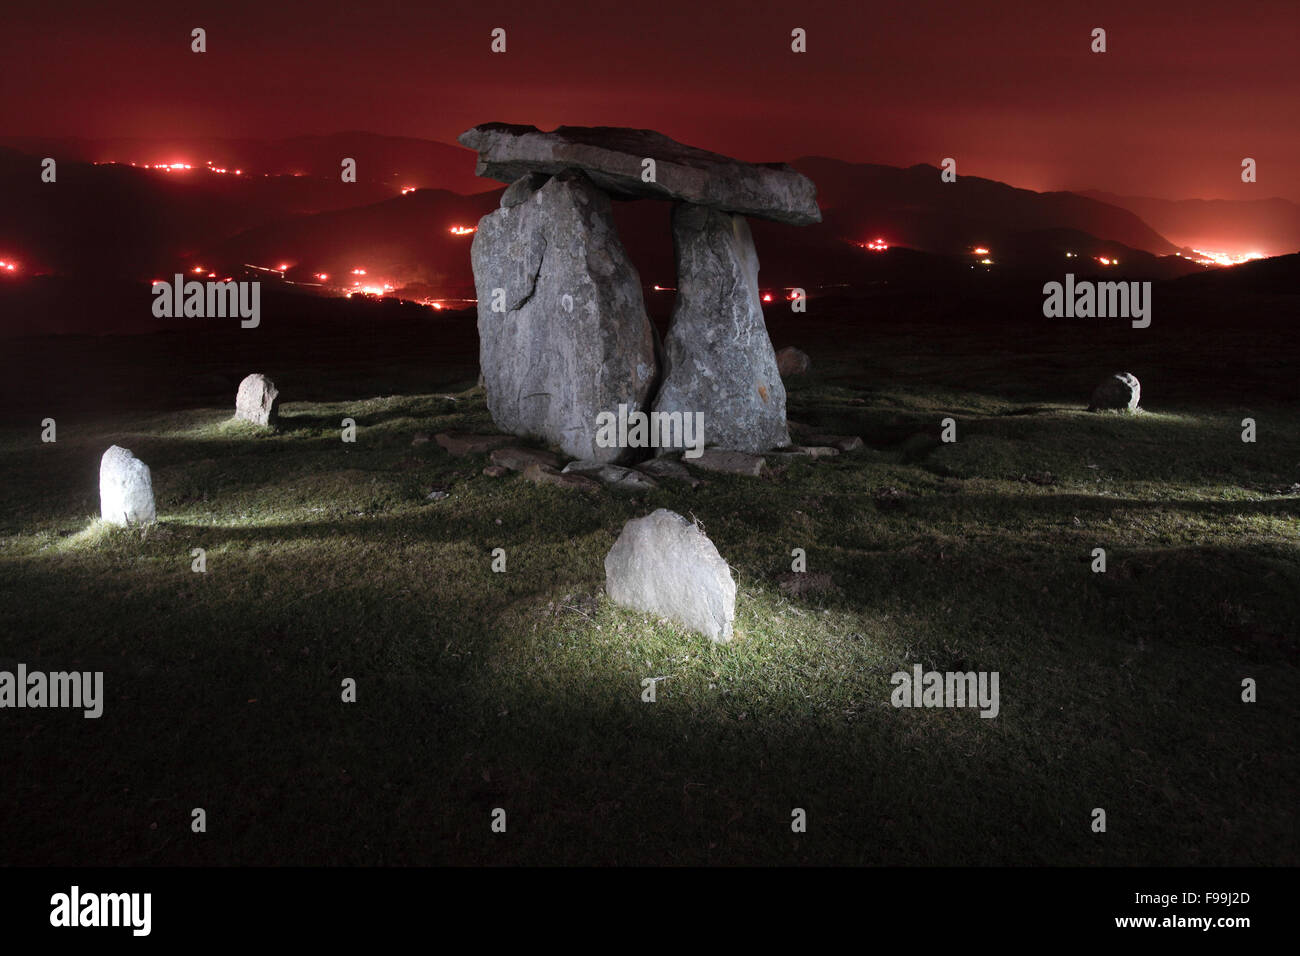 Dolmen in the night of Oiz mountain, Basque Country - Stock Image